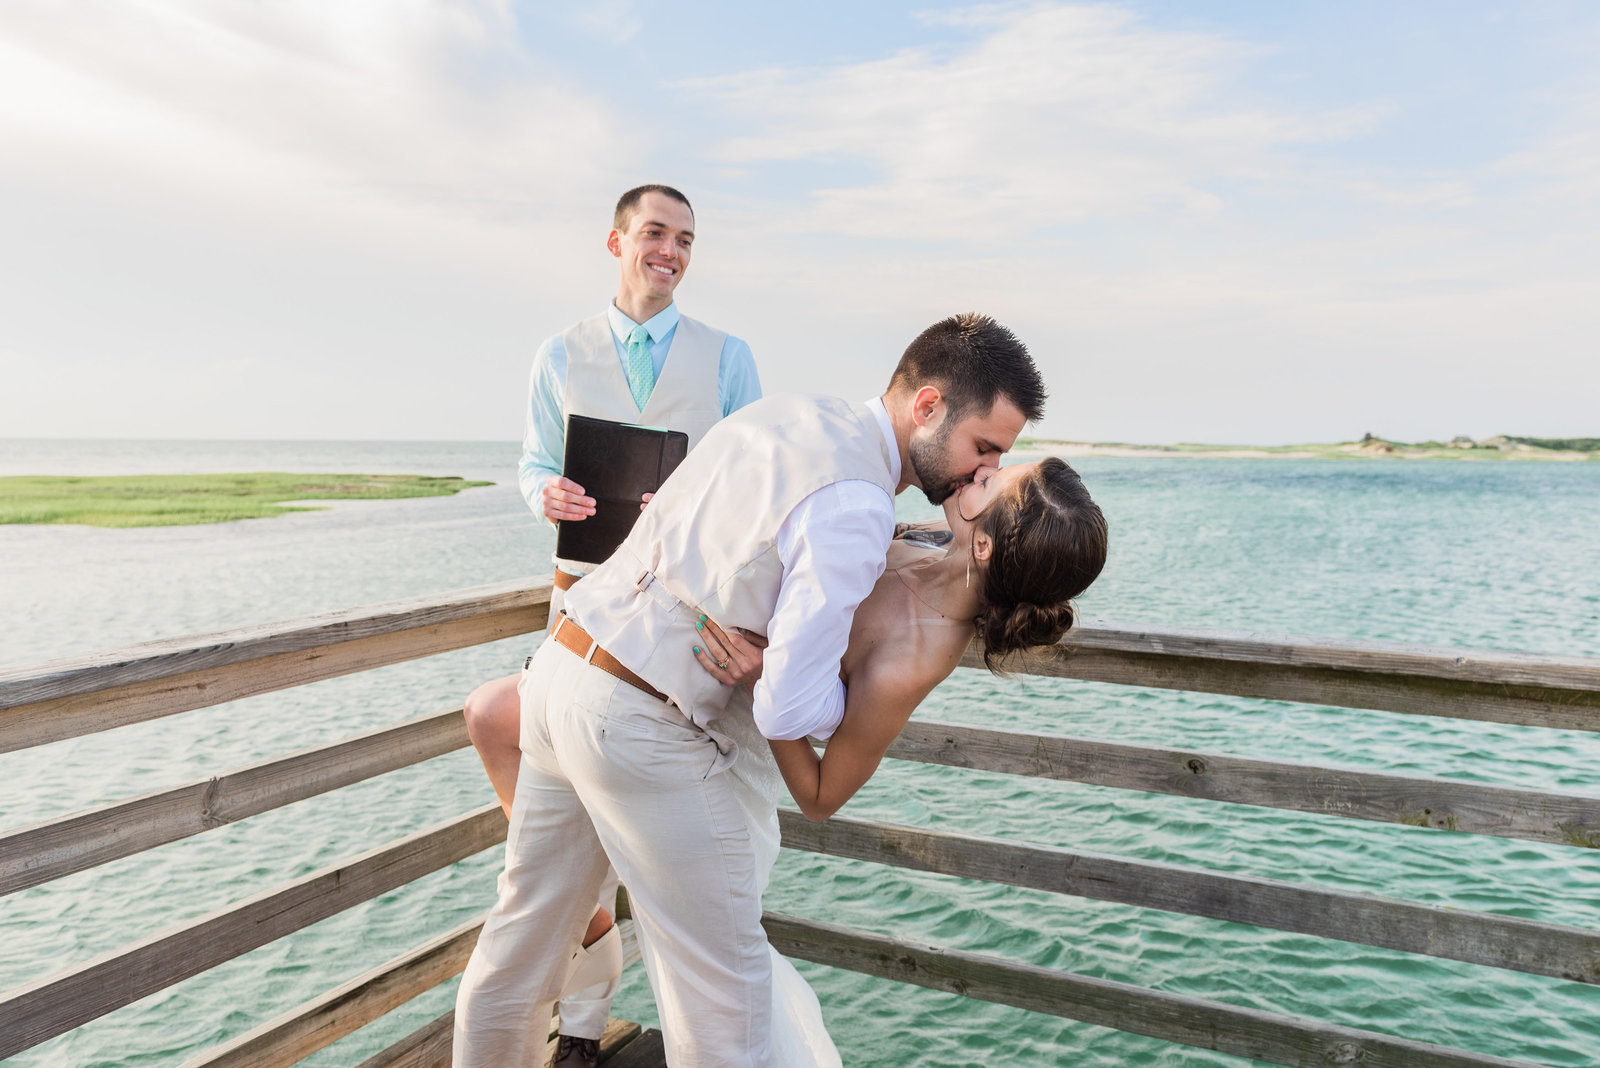 Bass hole boardwalk wedding photos in Yarmouth, MA on Cape Cod